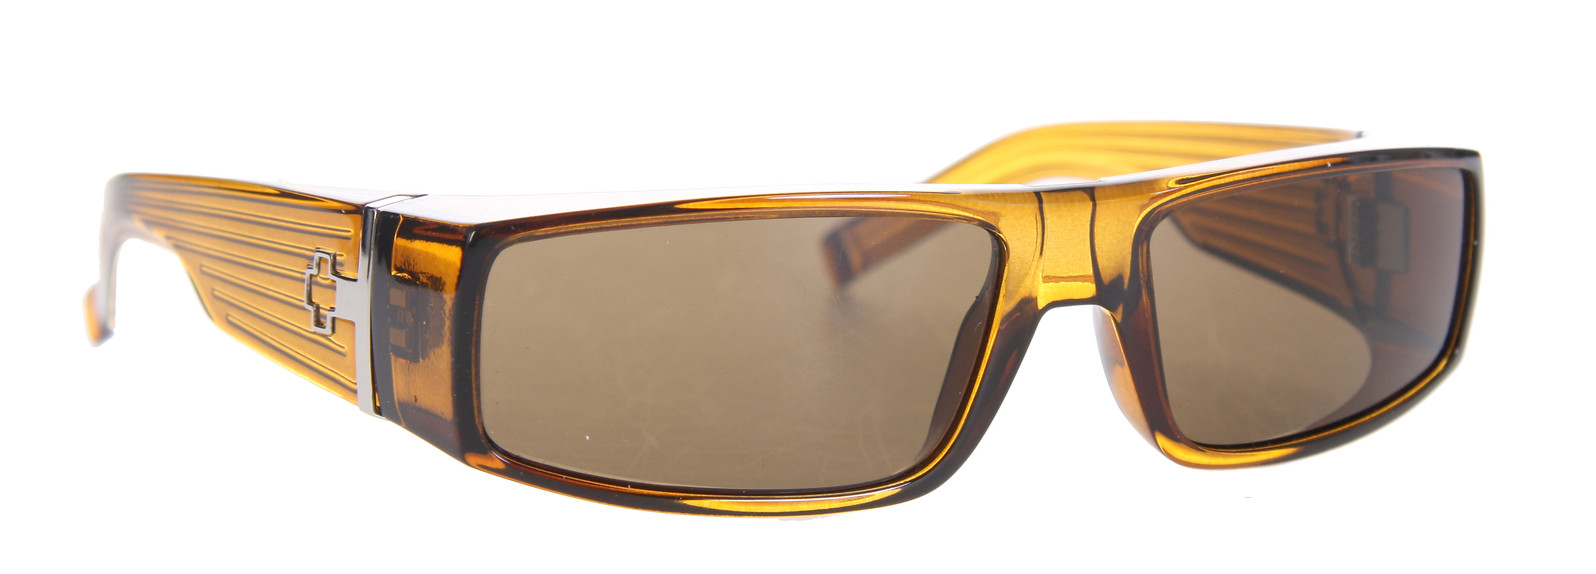 Spy Optic Spy Griffin Sunglasses Clear Mustard/Bronze Lens  spy-griffin-sngls-mustardbrnz-09.jpg